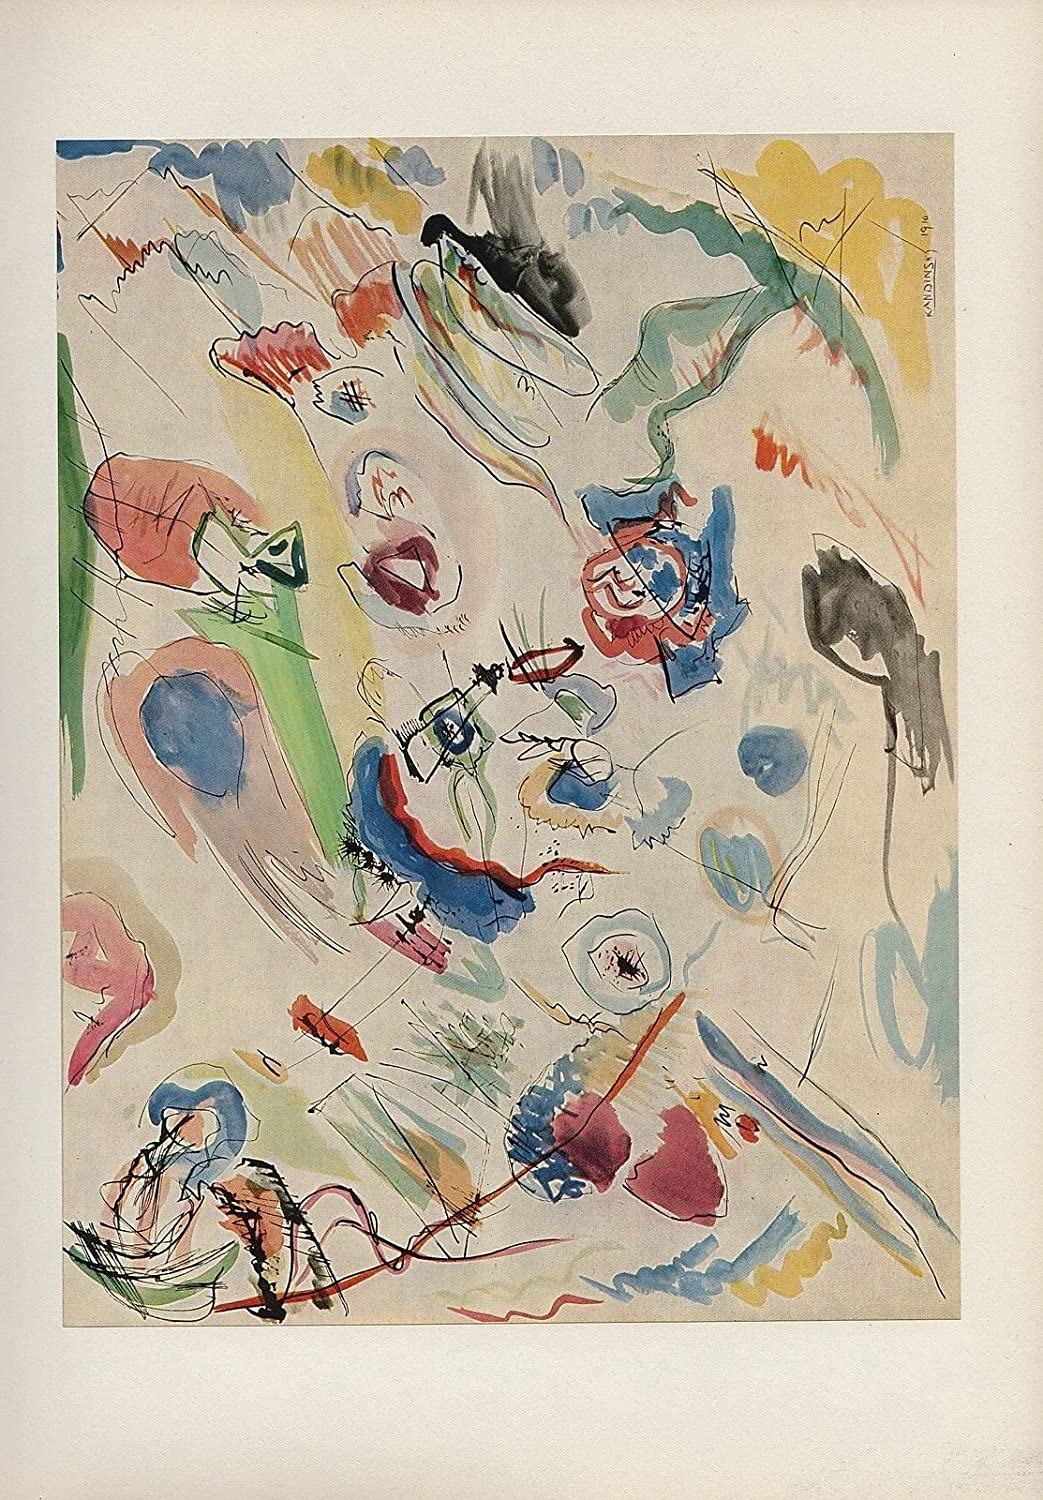 The first abstract watercolour Kandinsky